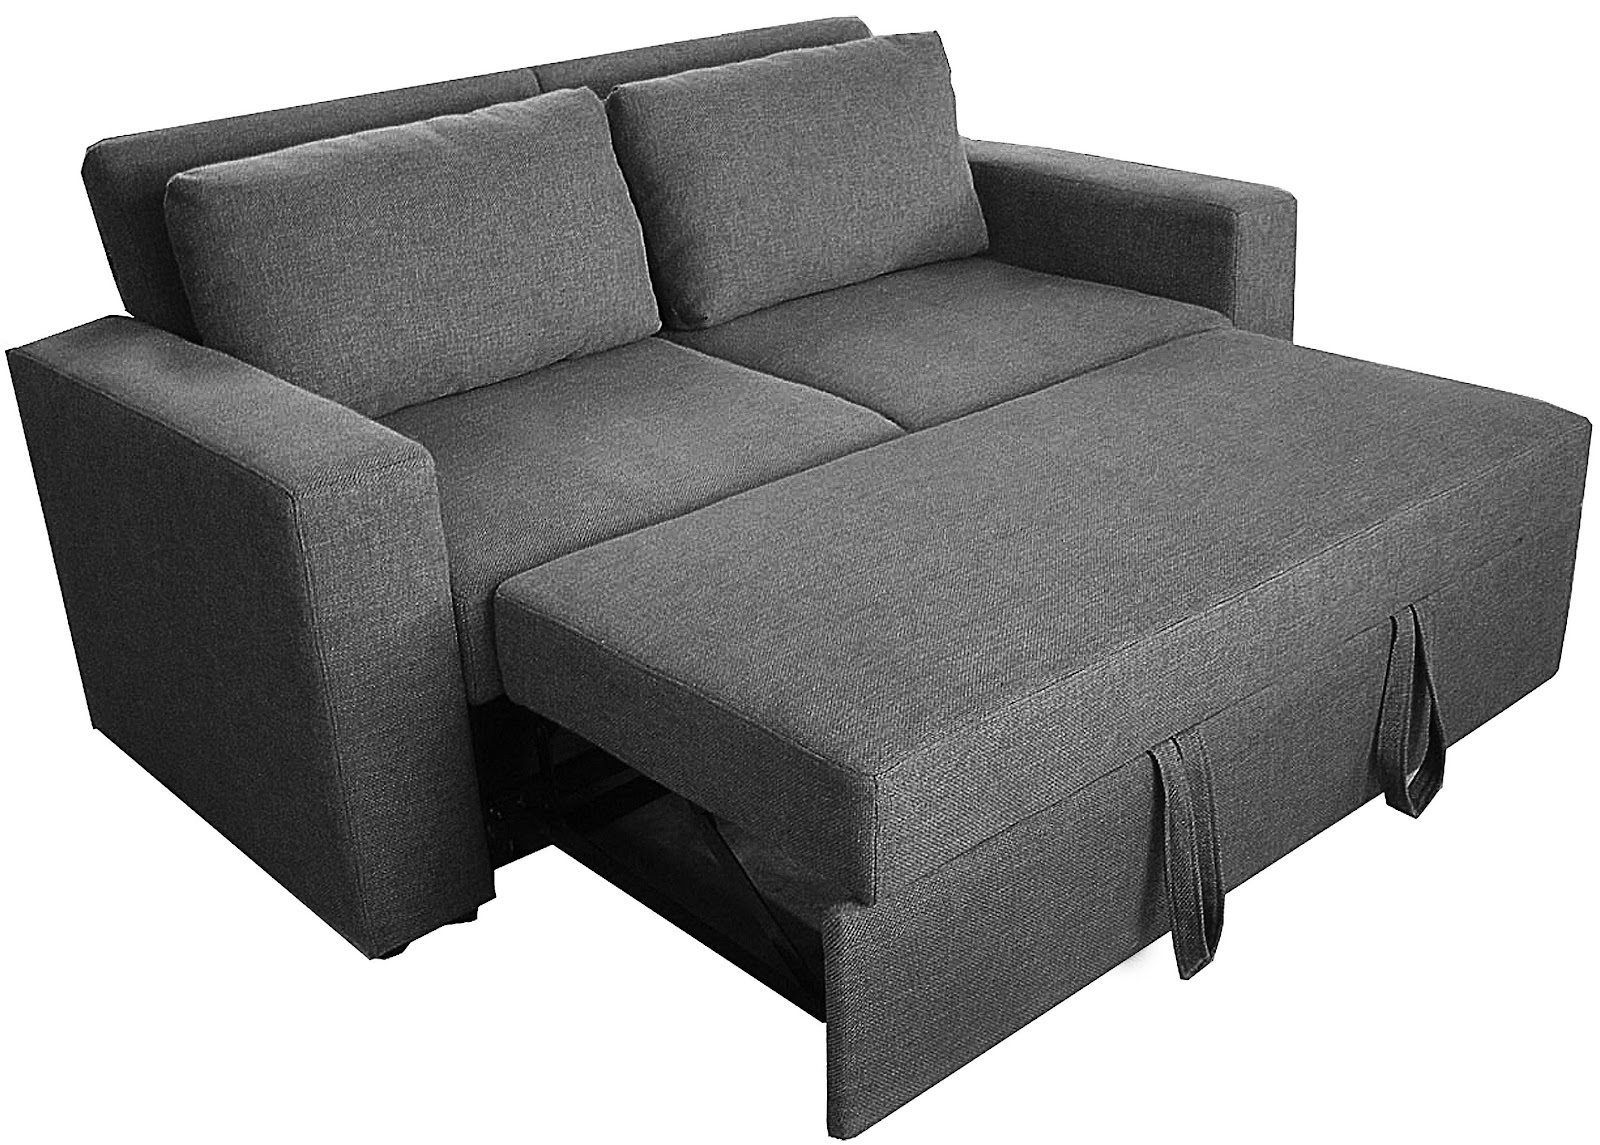 Sectional Sofa With Pull Out Bed Has One Of The Best Kind Of Other Is Pull Out Chair Bed Ikea With Be Pull Out Sofa Bed Sofa Bed With Storage Sofa